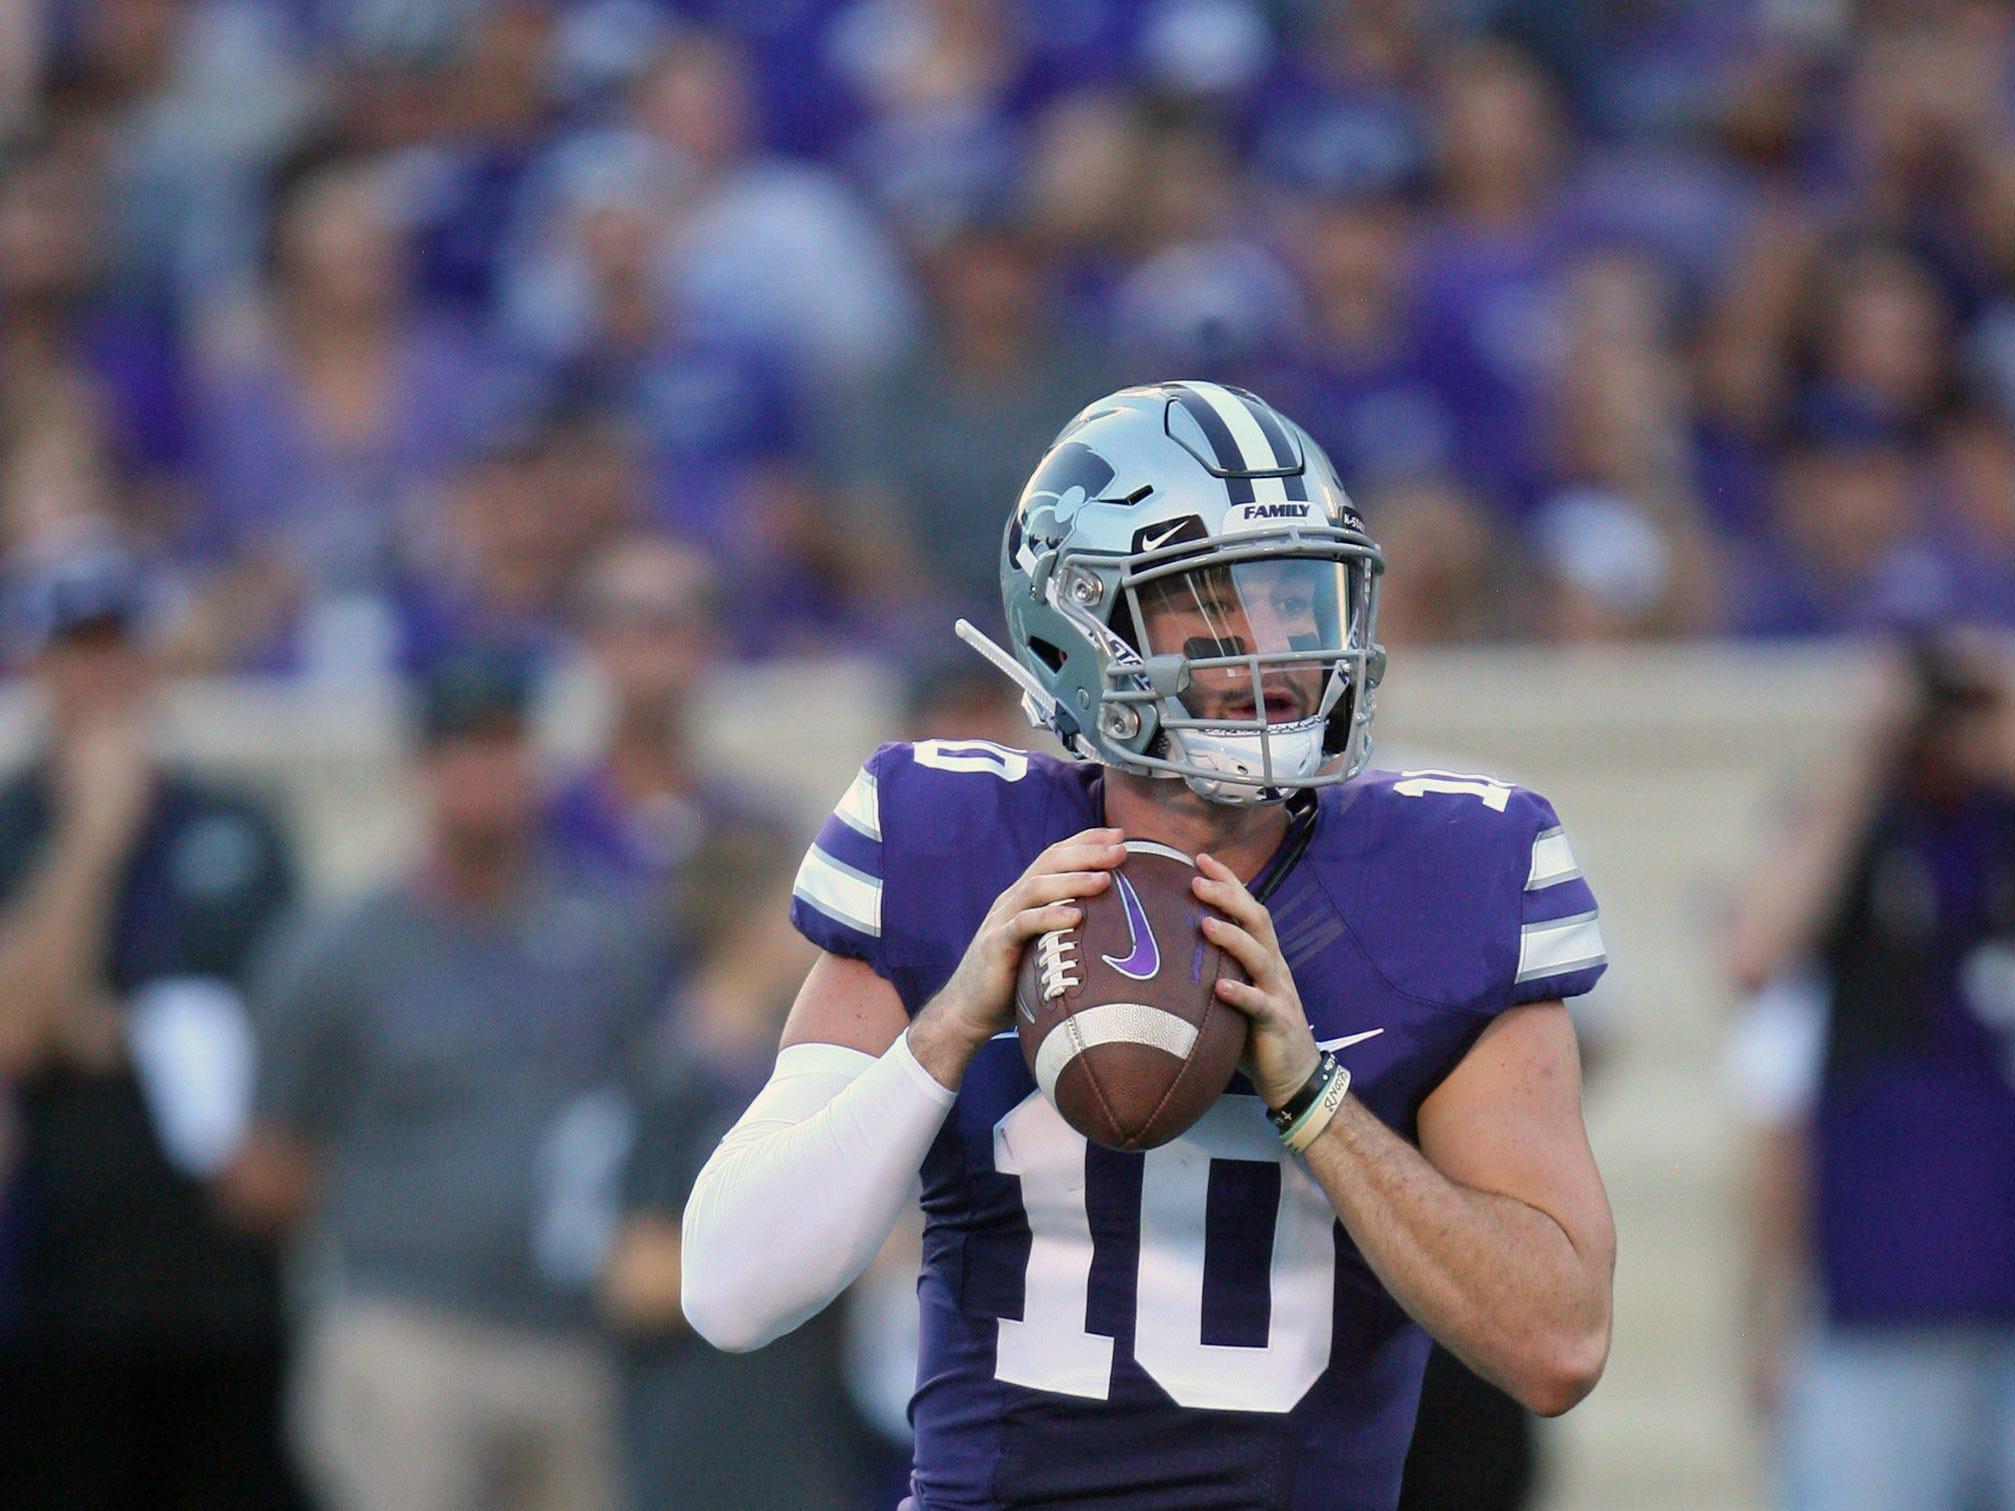 Sep 1, 2018; Manhattan, KS, USA; Kansas State Wildcats quarterback Skylar Thompson (10) drops back to pass against the South Dakota Coyotes at Bill Snyder Family Stadium. Mandatory Credit: Scott Sewell-USA TODAY Sports